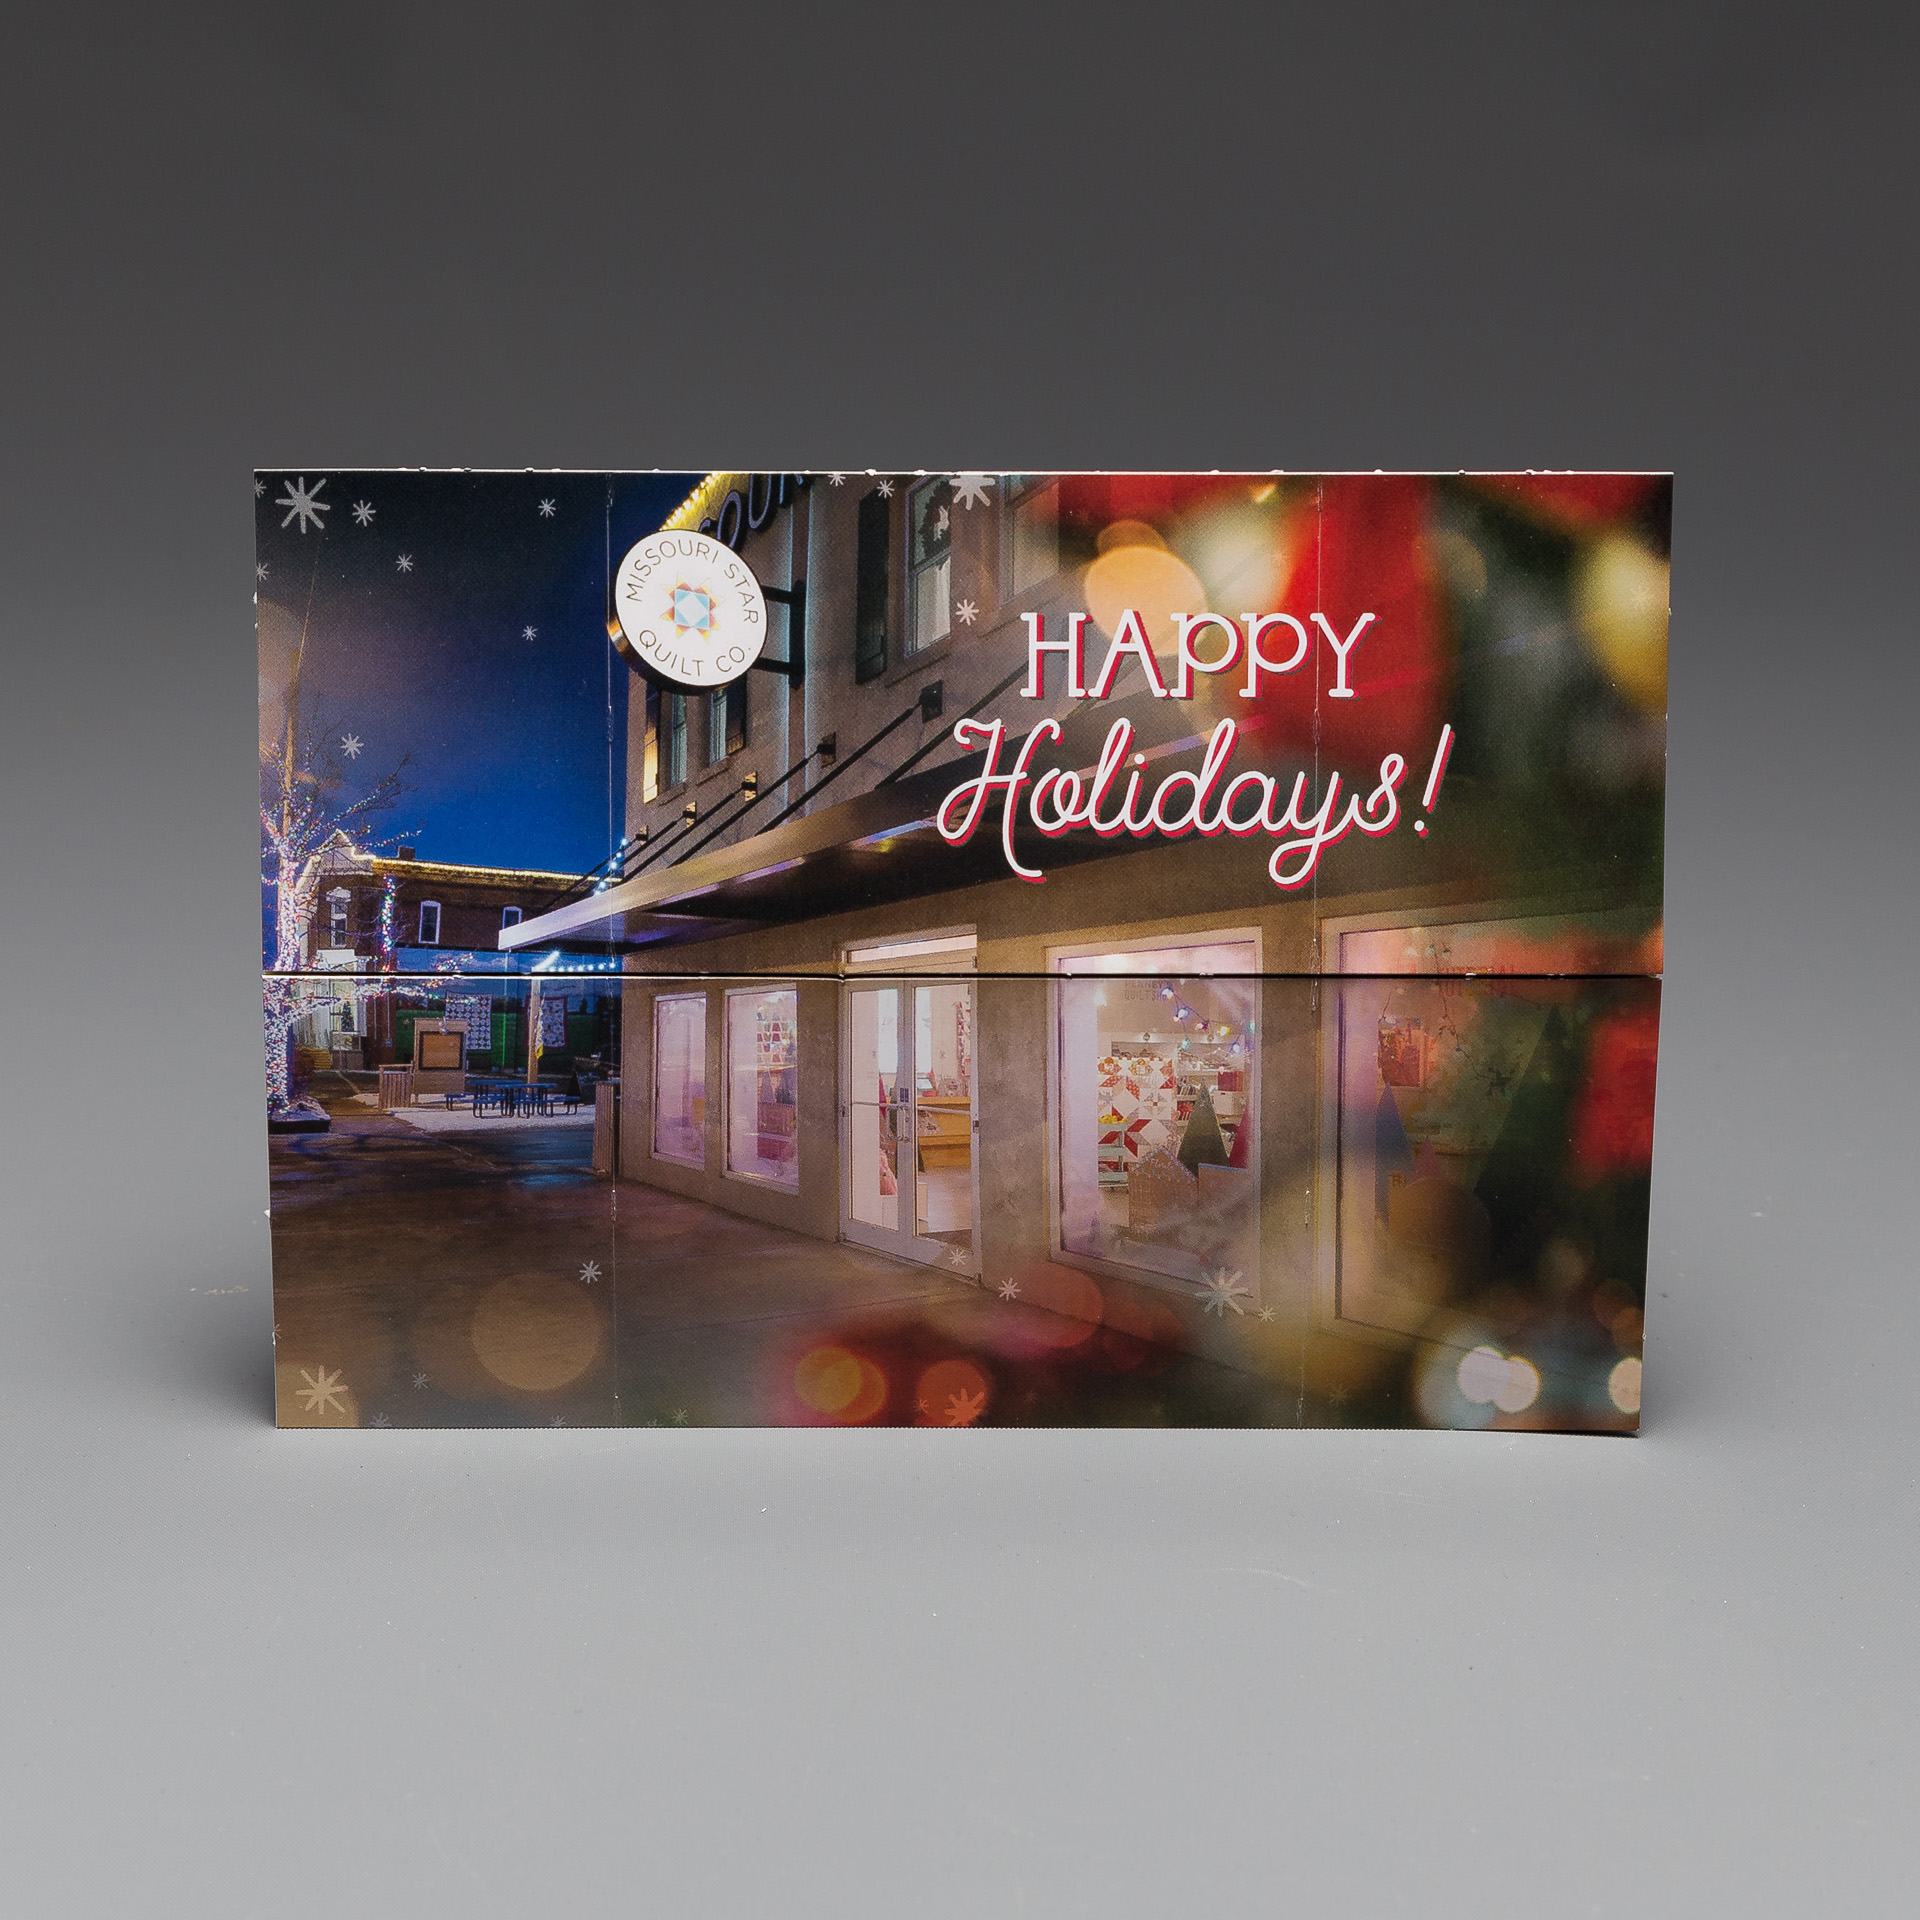 The Flapper®- an interactive direct mail piece that flips the creative holiday card model completely on its head